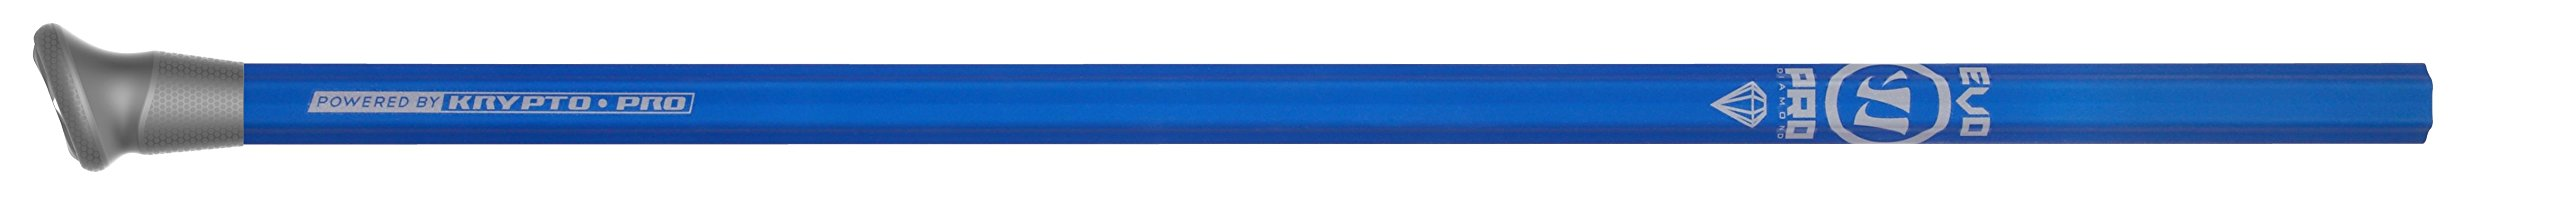 Warrior Evo Pro Diamond Defense Handle Lacrose Shaft, Royal Blue